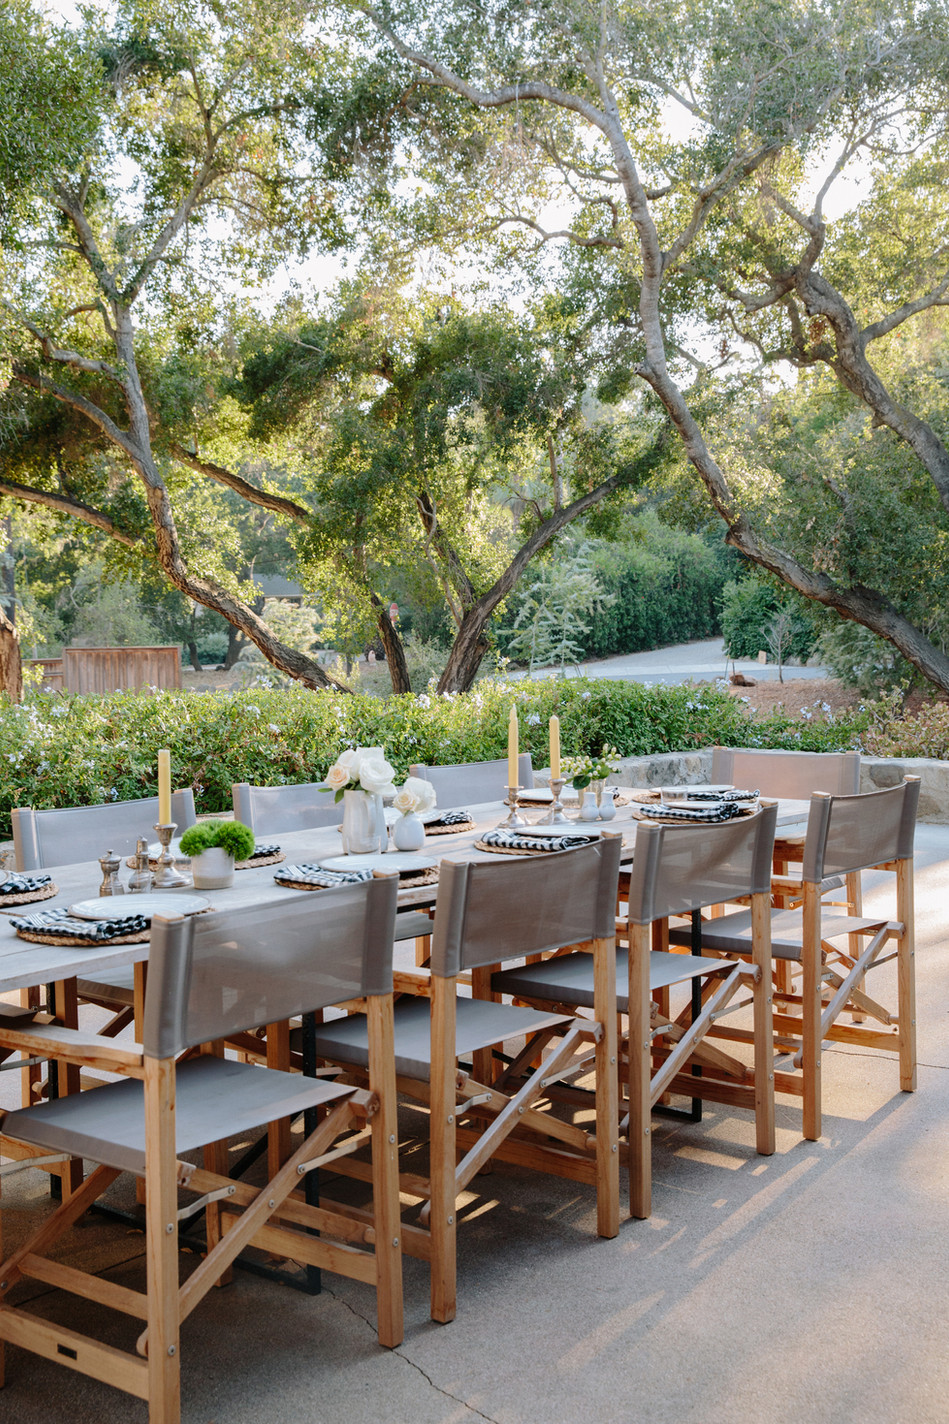 Ojai, Ca outdoor entertaining under the Oak trees by Lilly Walton Design